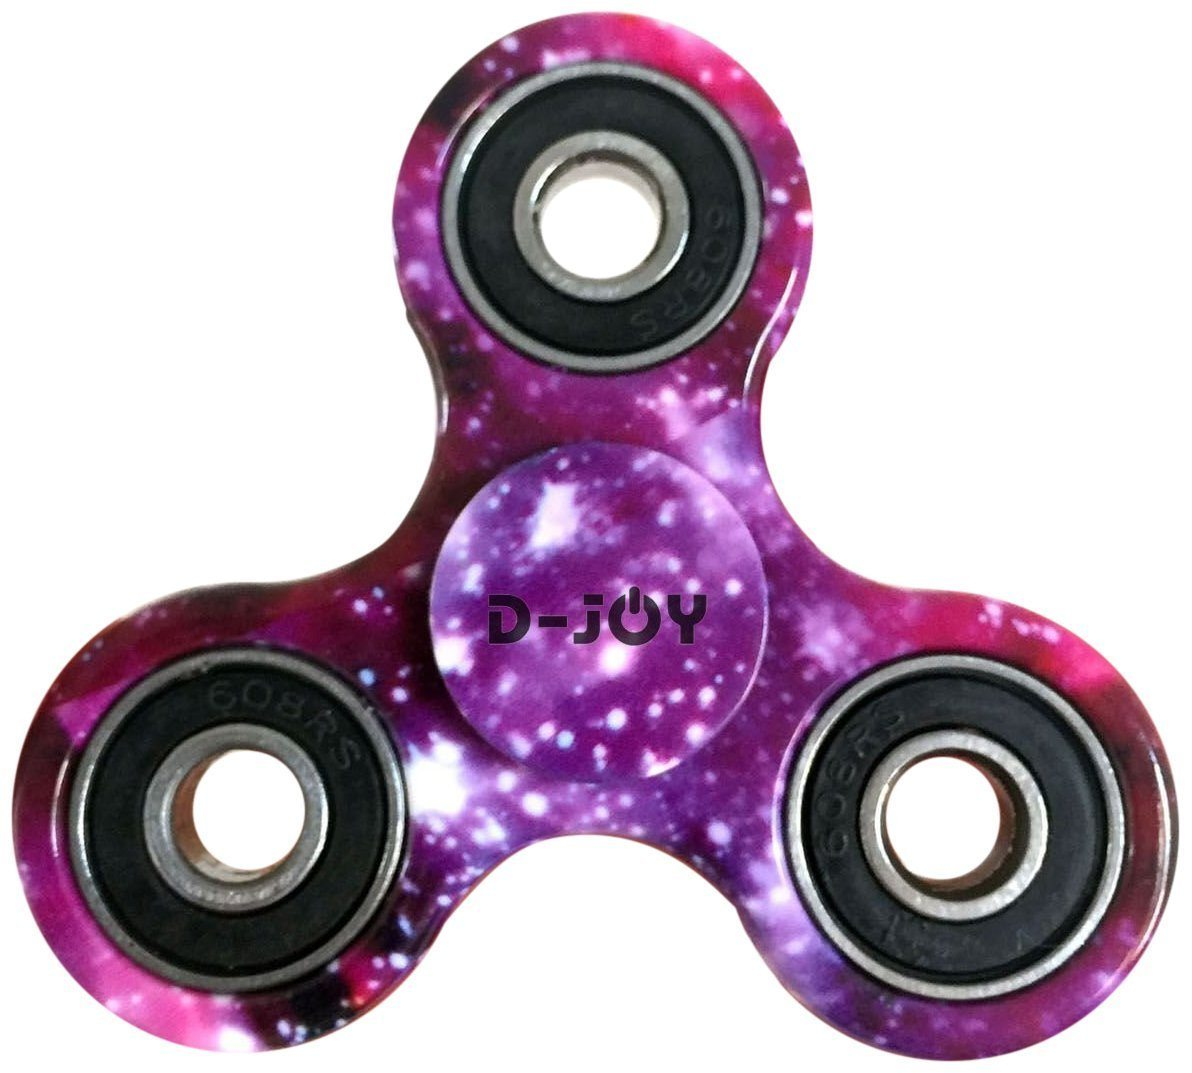 71phYjakkjL. SL1192  - FORTUNE WHEEL Tri-Spinner Fidget Toy Hand Spinner Camouflage, Stress Reducer Relieve Anxiety and Boredom Camo (Starry sky)